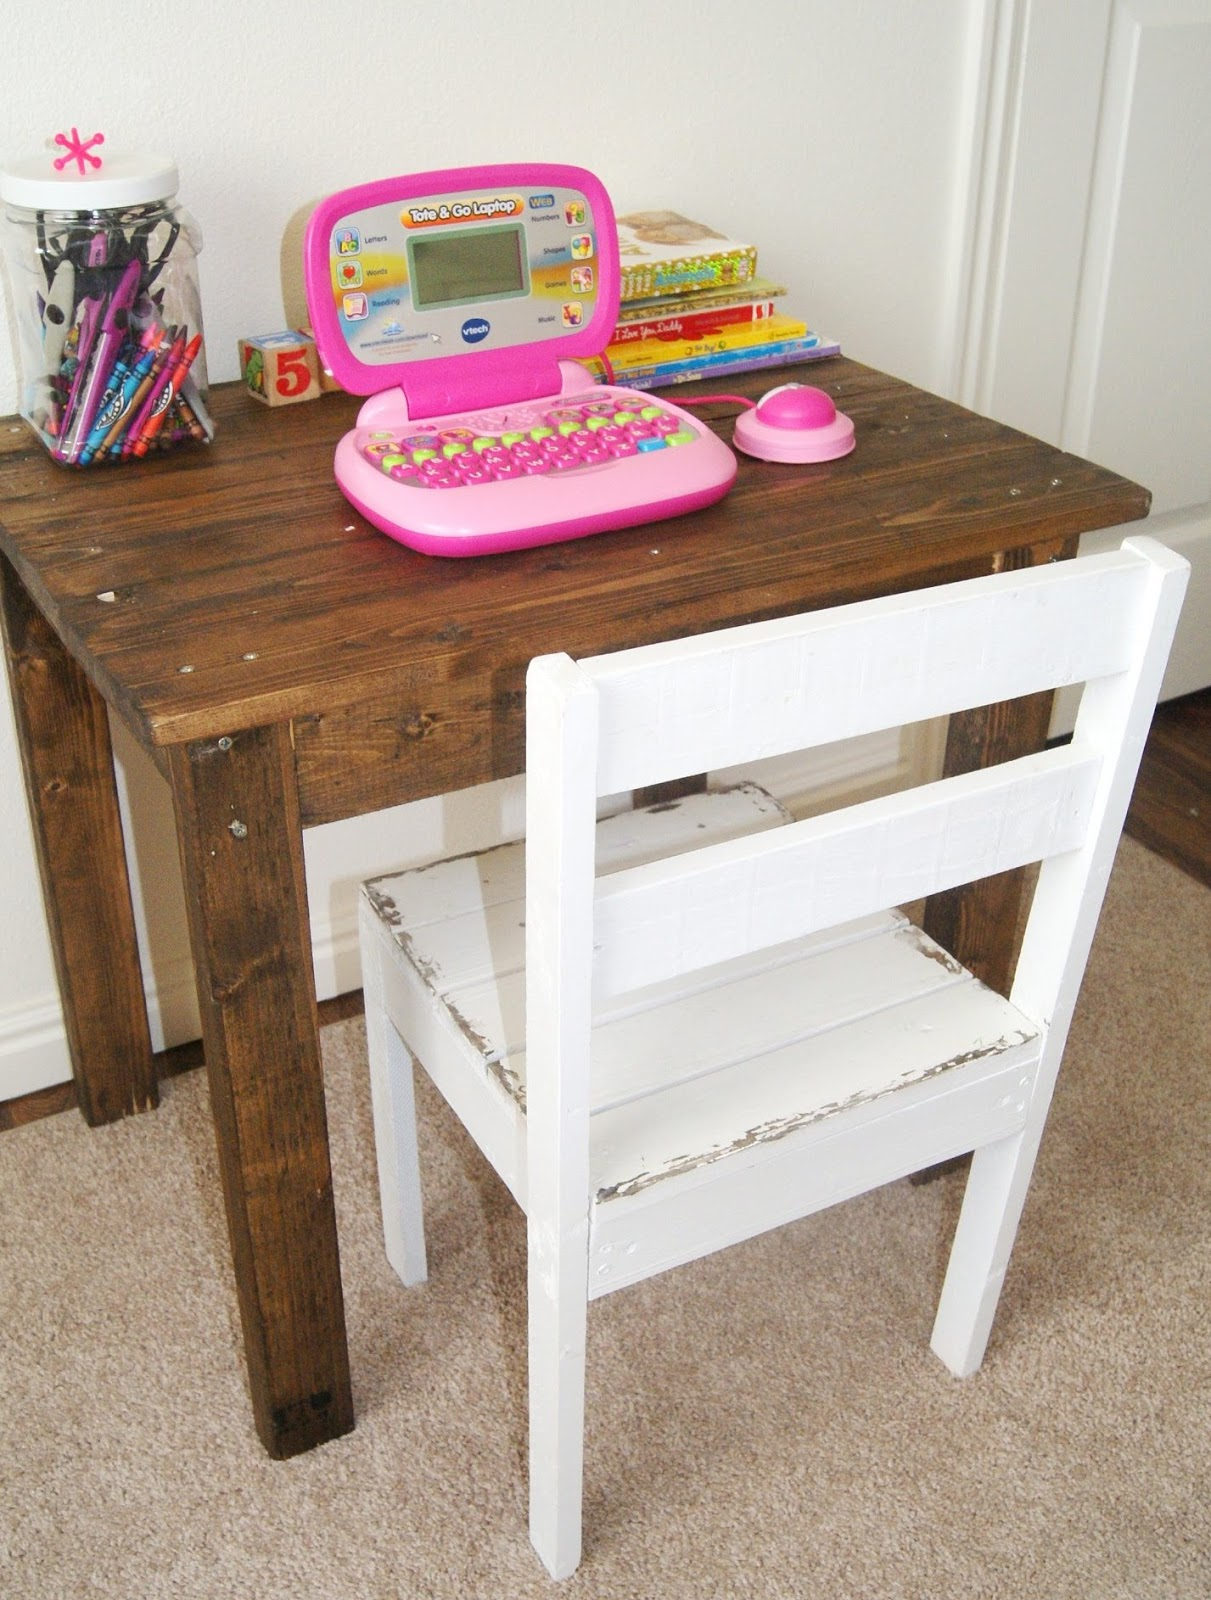 DIY Pallet Table and Chairs for Kids 1211 x 1600